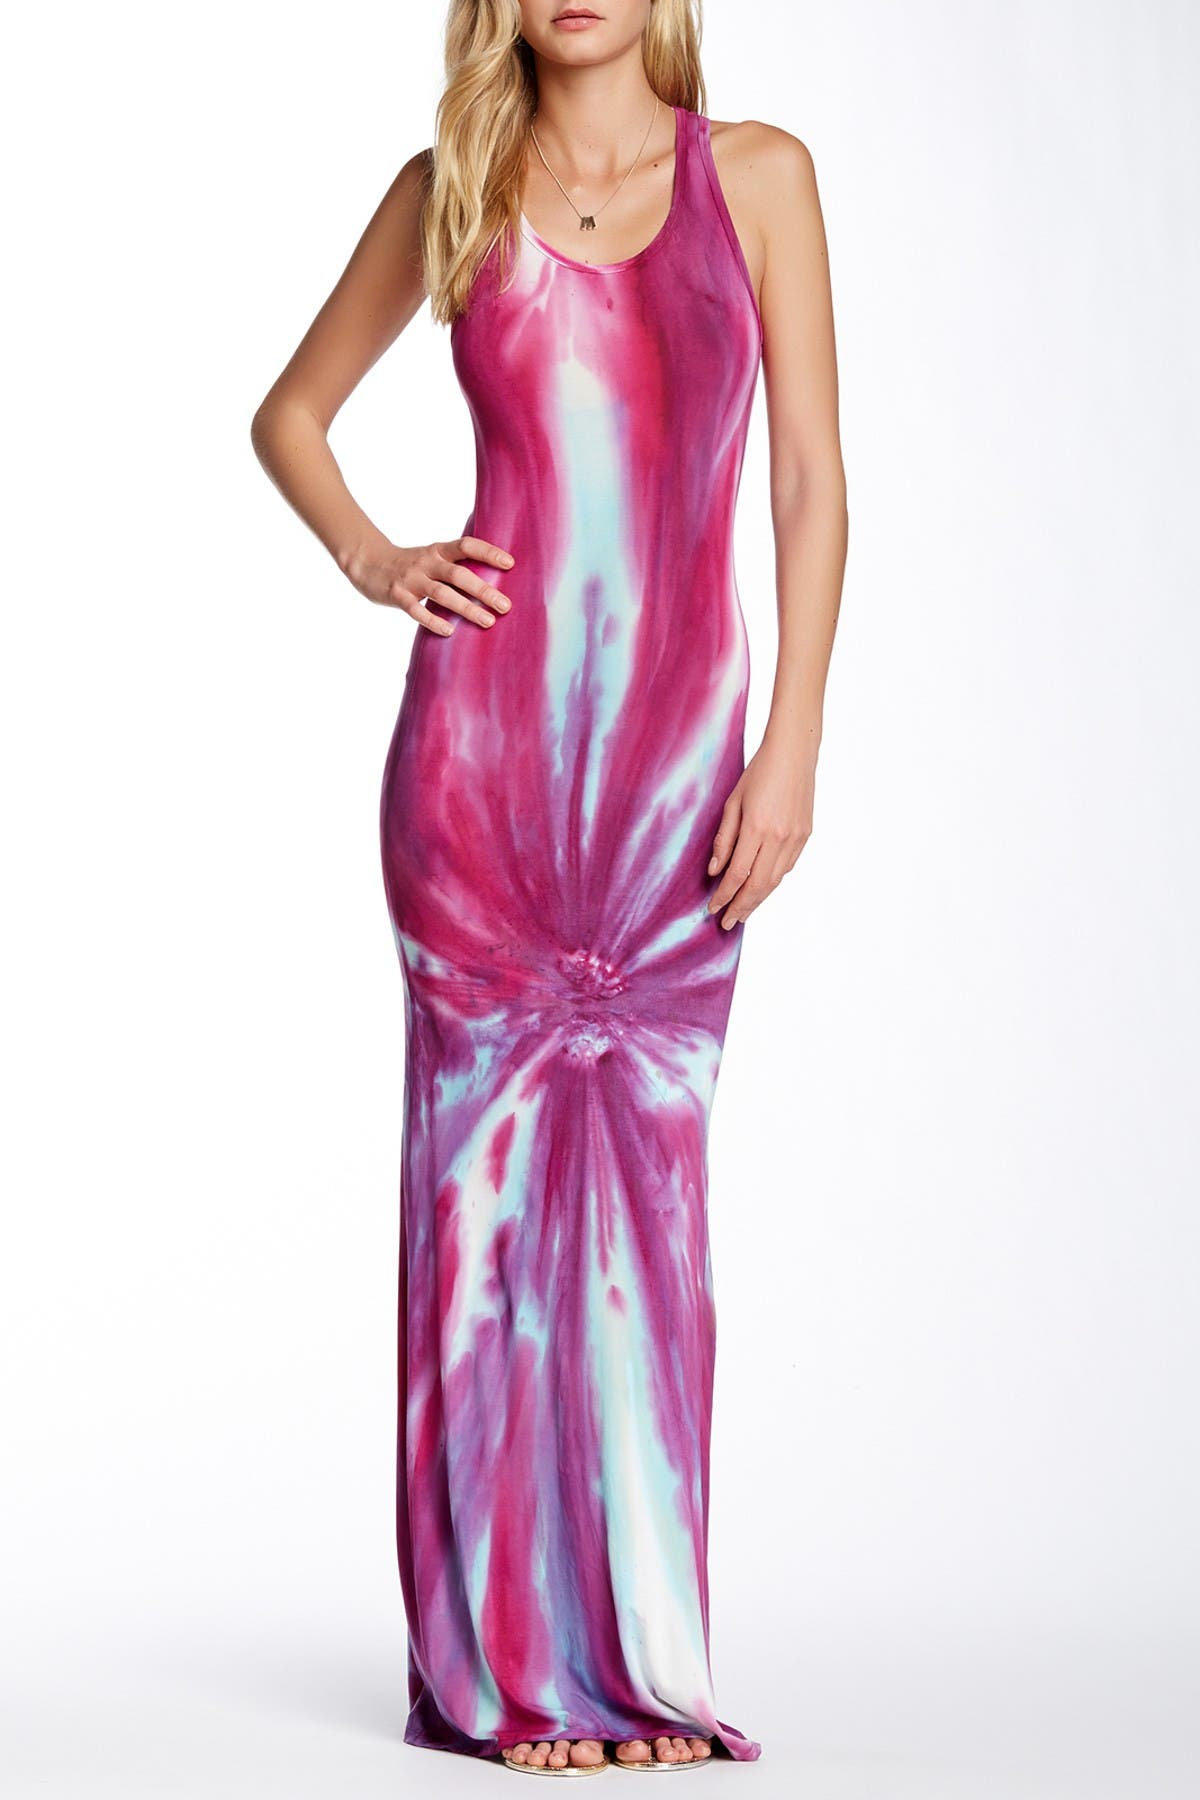 Image of Go Couture Tie-Dye Maxi Dress